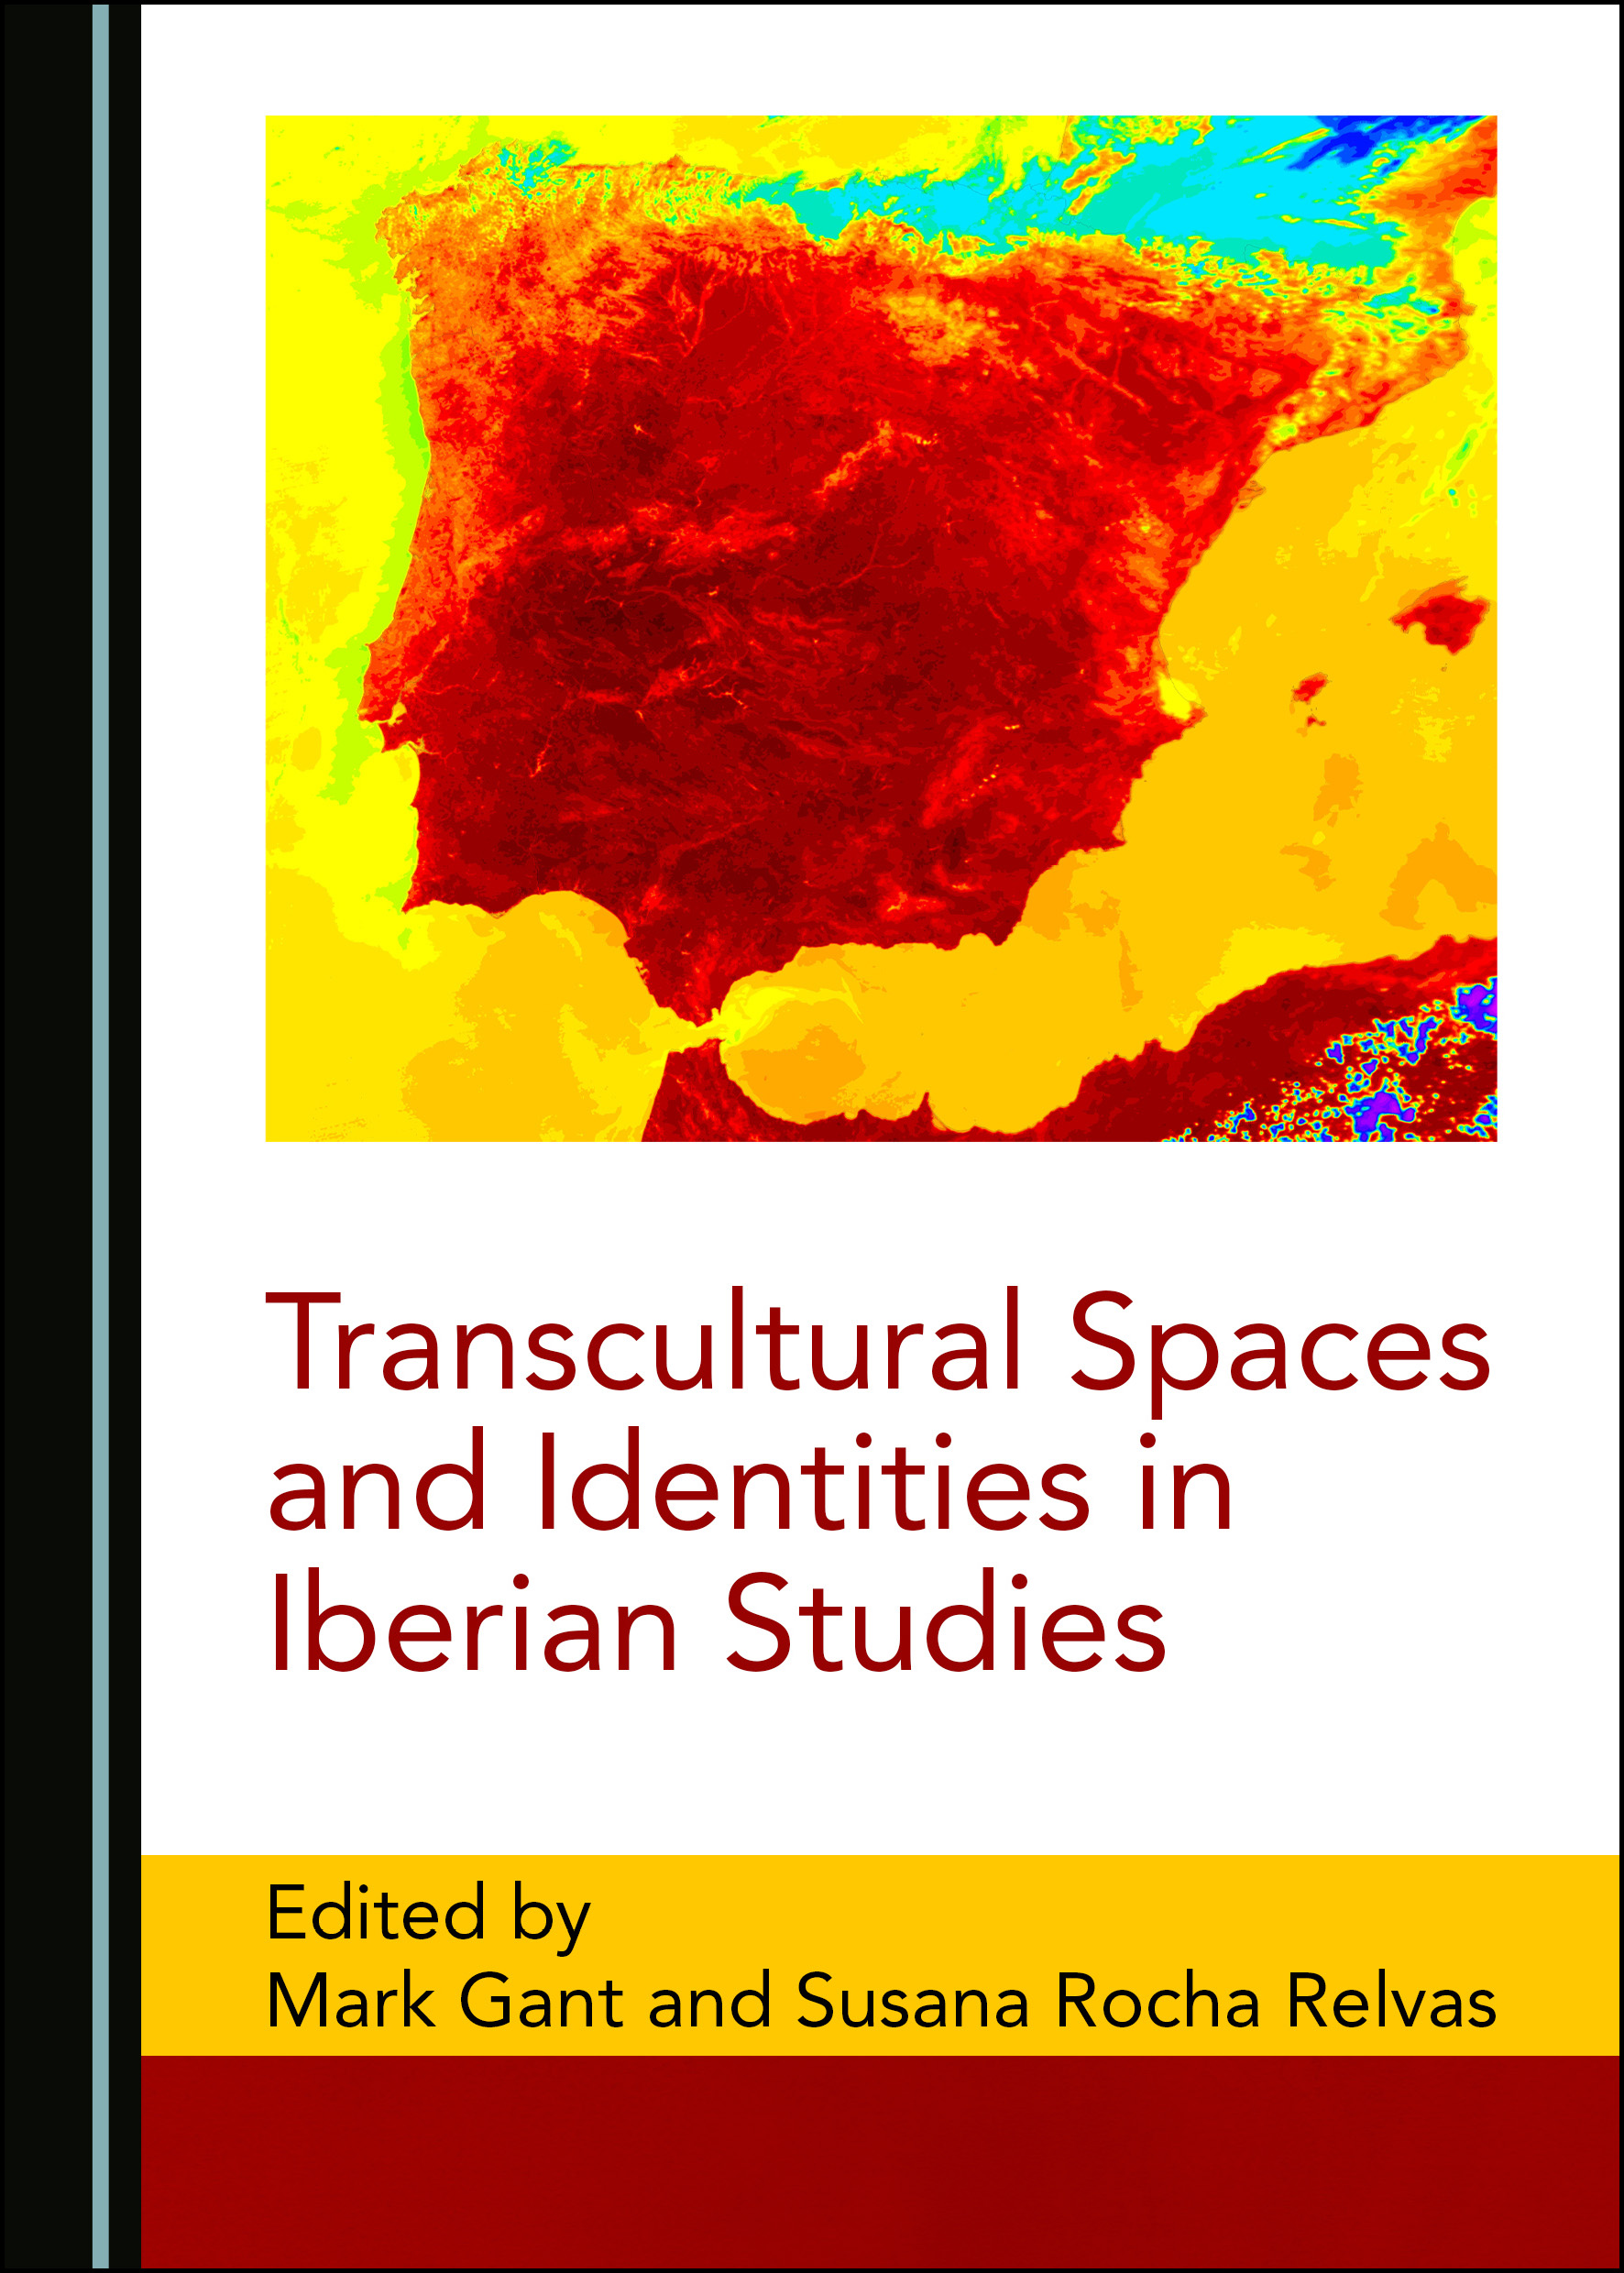 Transcultural Spaces and Identities in Iberian Studies